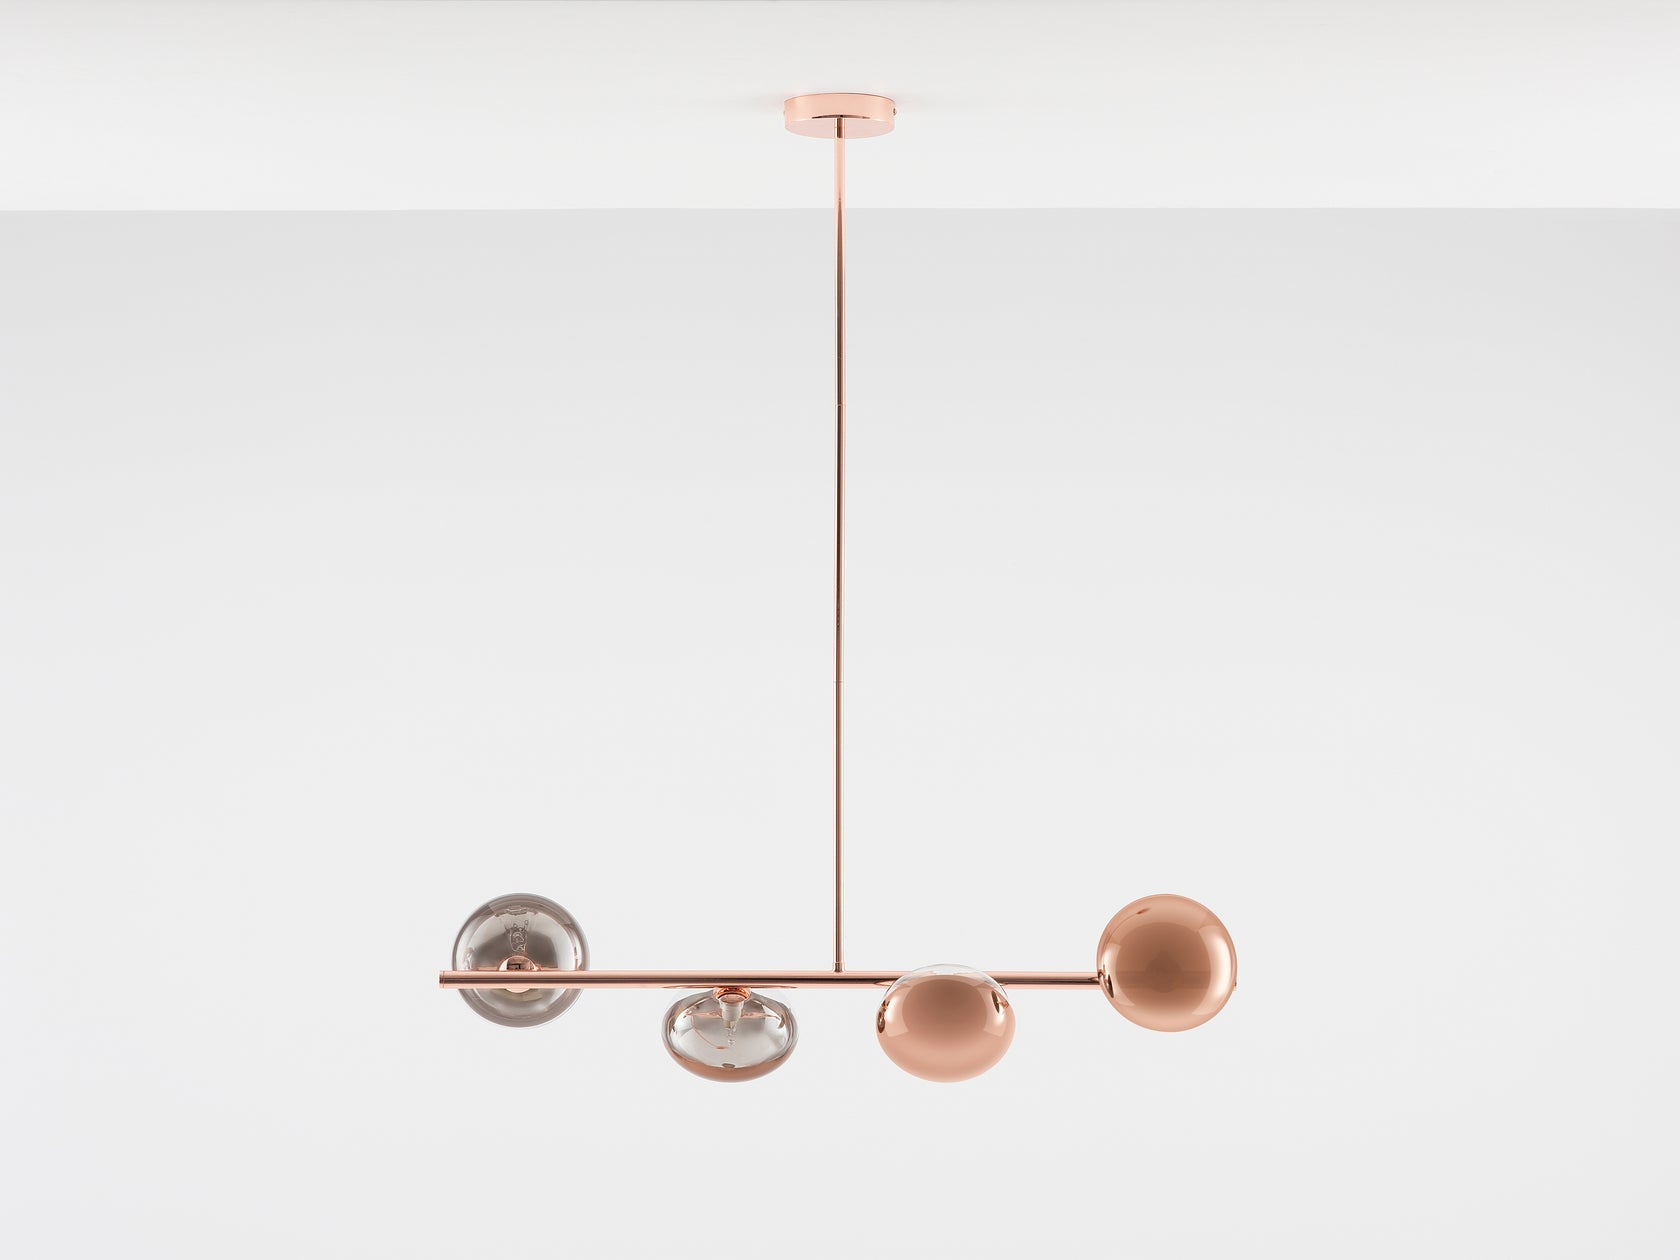 Reflective ceiling light copper | off | houseof.com